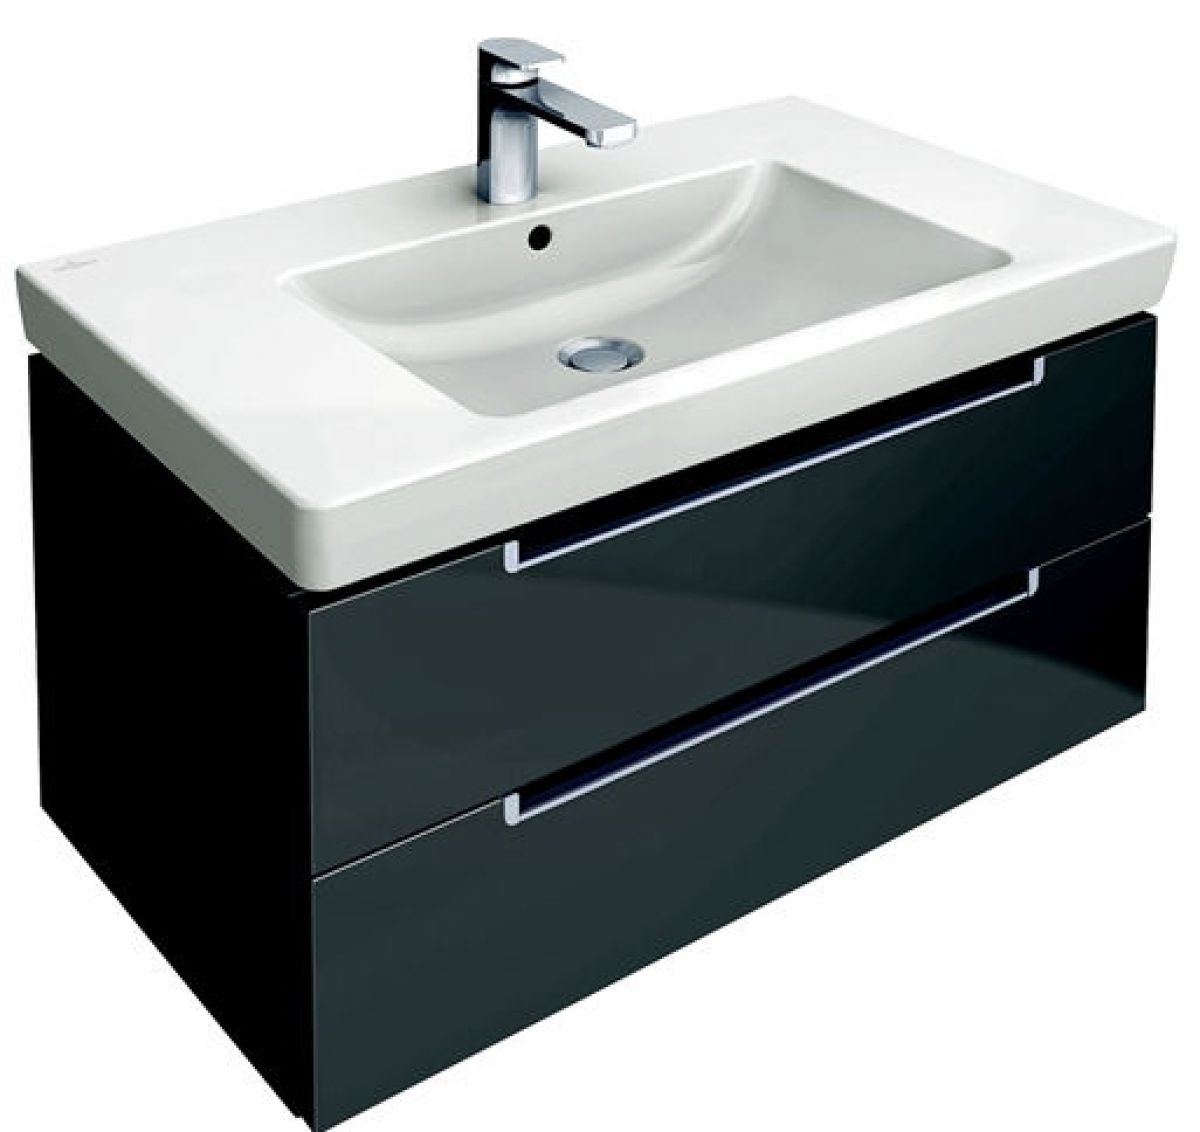 villeroy boch subway 2 0 vanity washbasin unit uk bathrooms. Black Bedroom Furniture Sets. Home Design Ideas